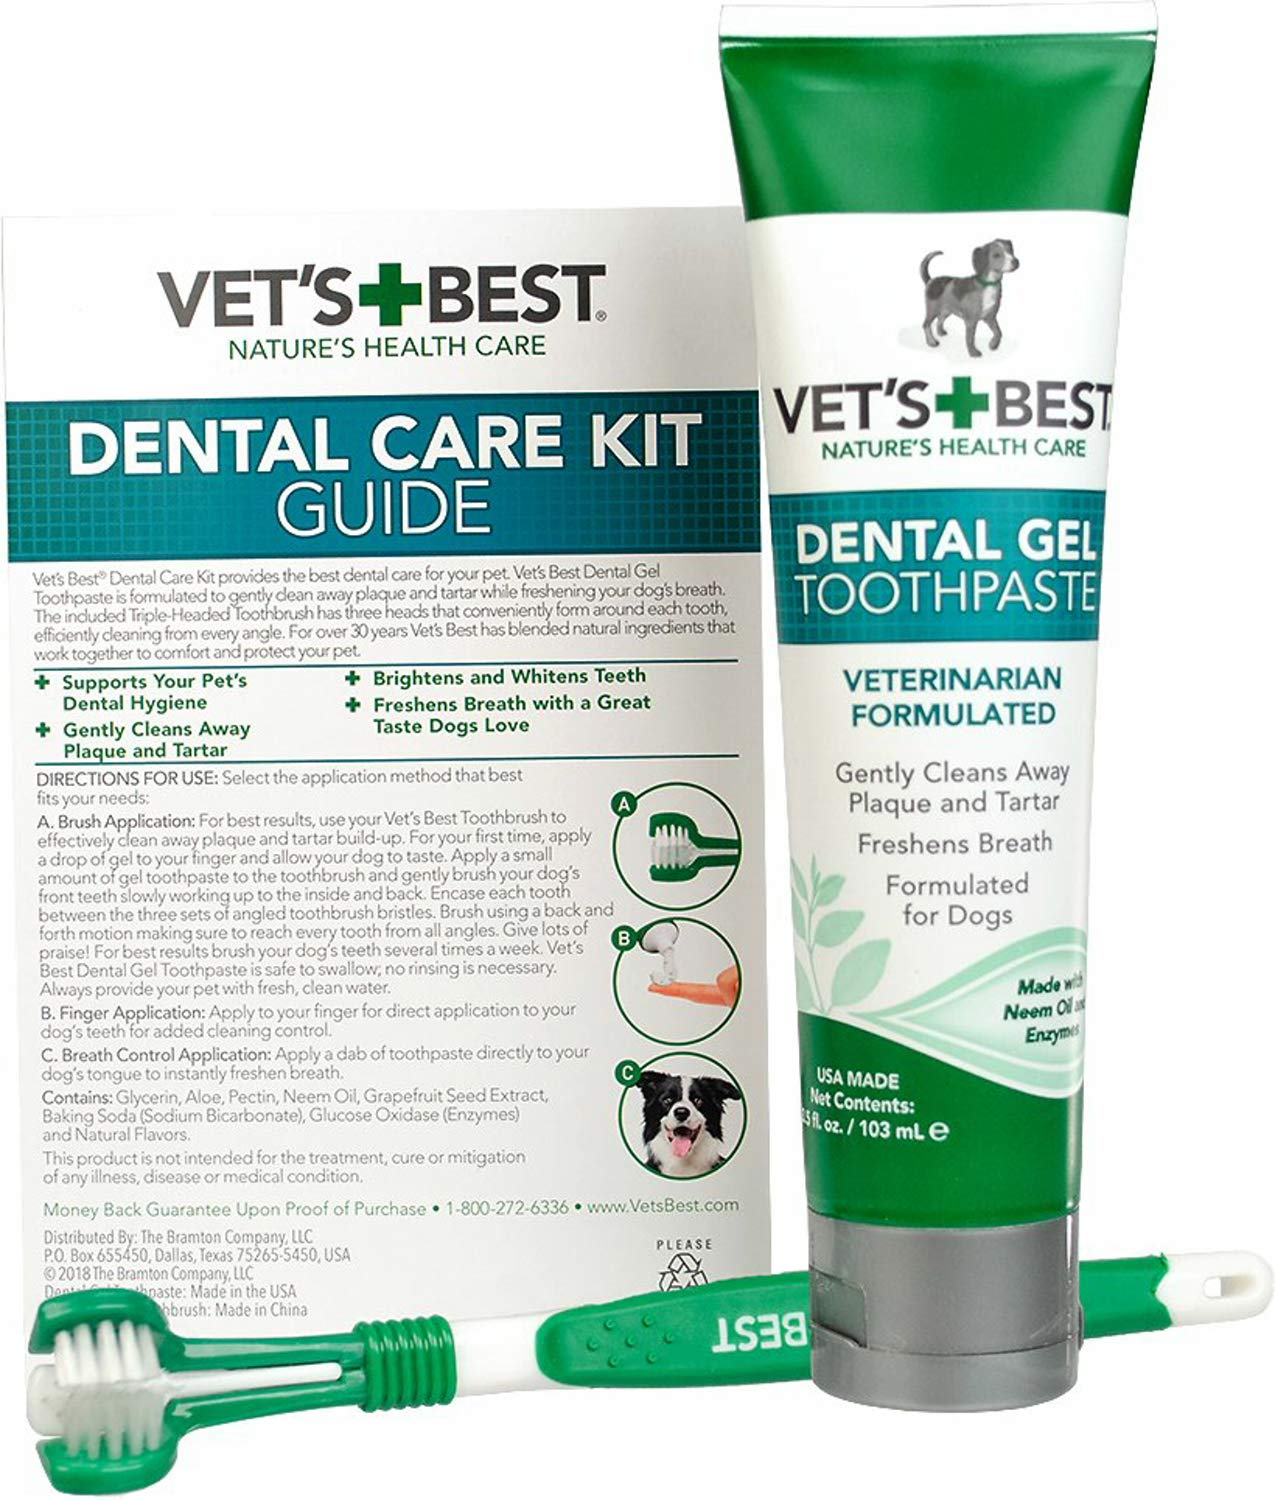 Vet's Best Dental Care Triple-Headed Toothbrush & Gel Toothpaste for Dogs, 3.5 Ounce, 24 Pack